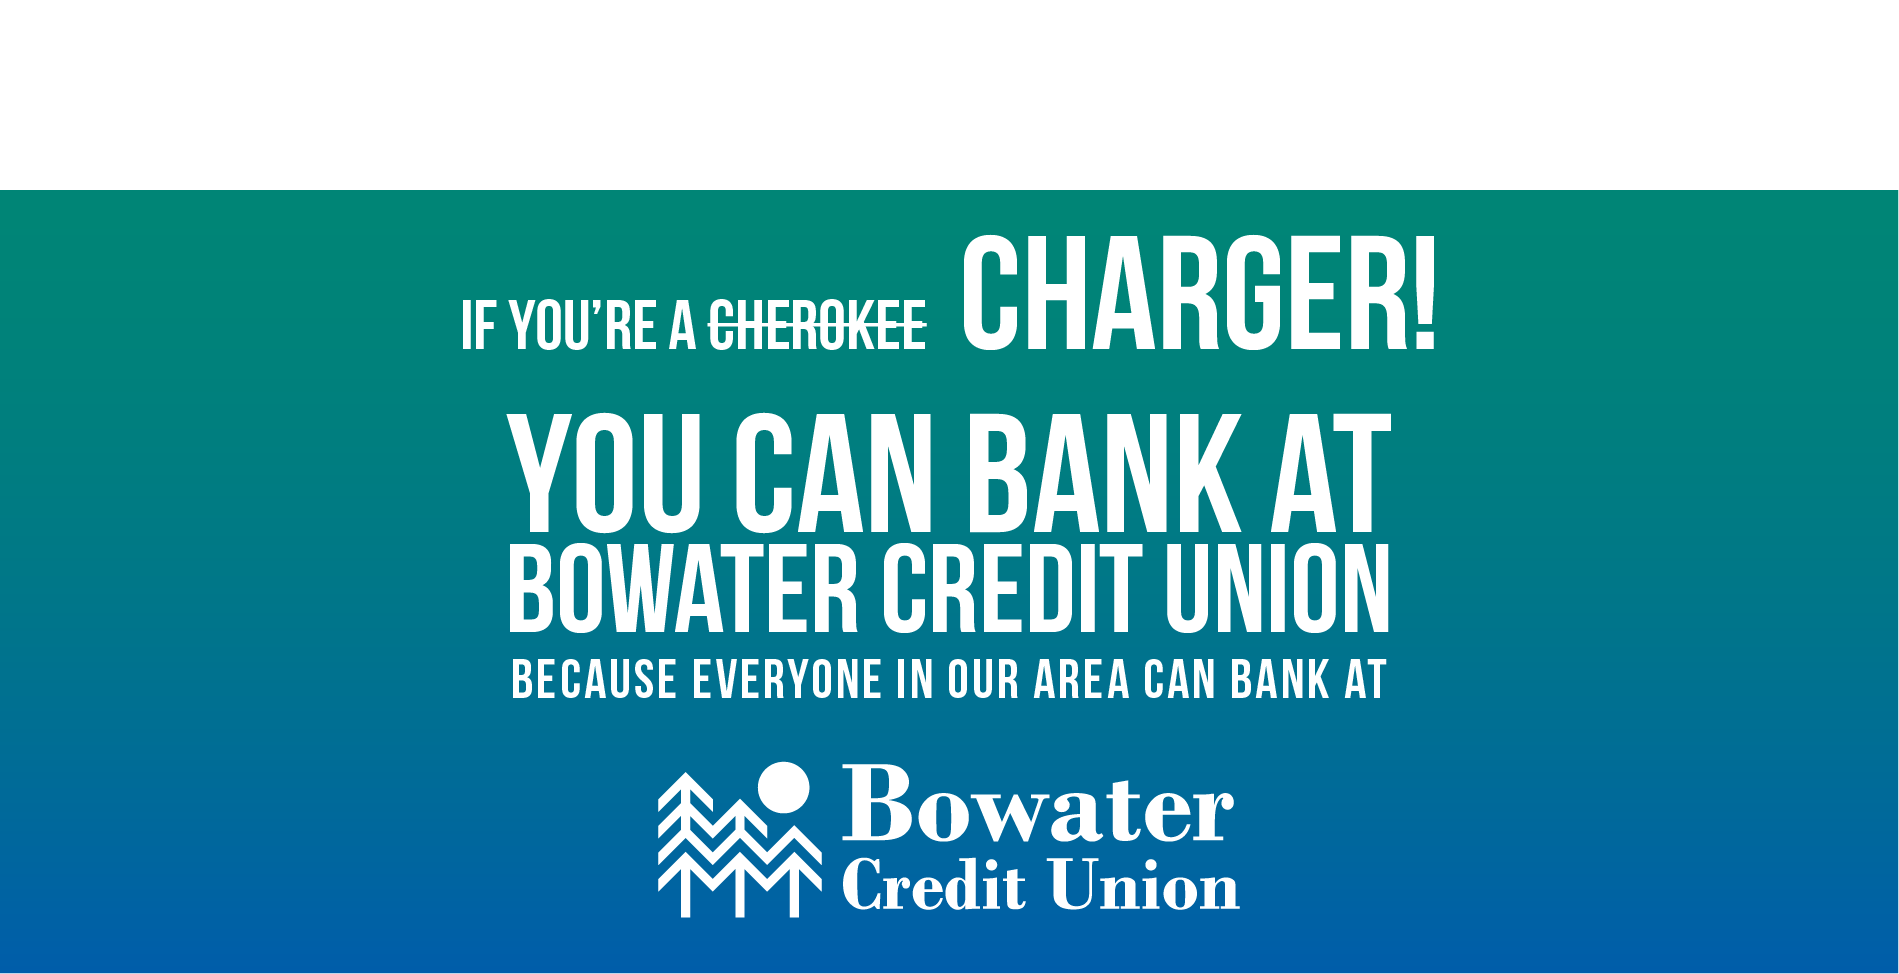 if youre a charger you can bank at Bowater Credit Union